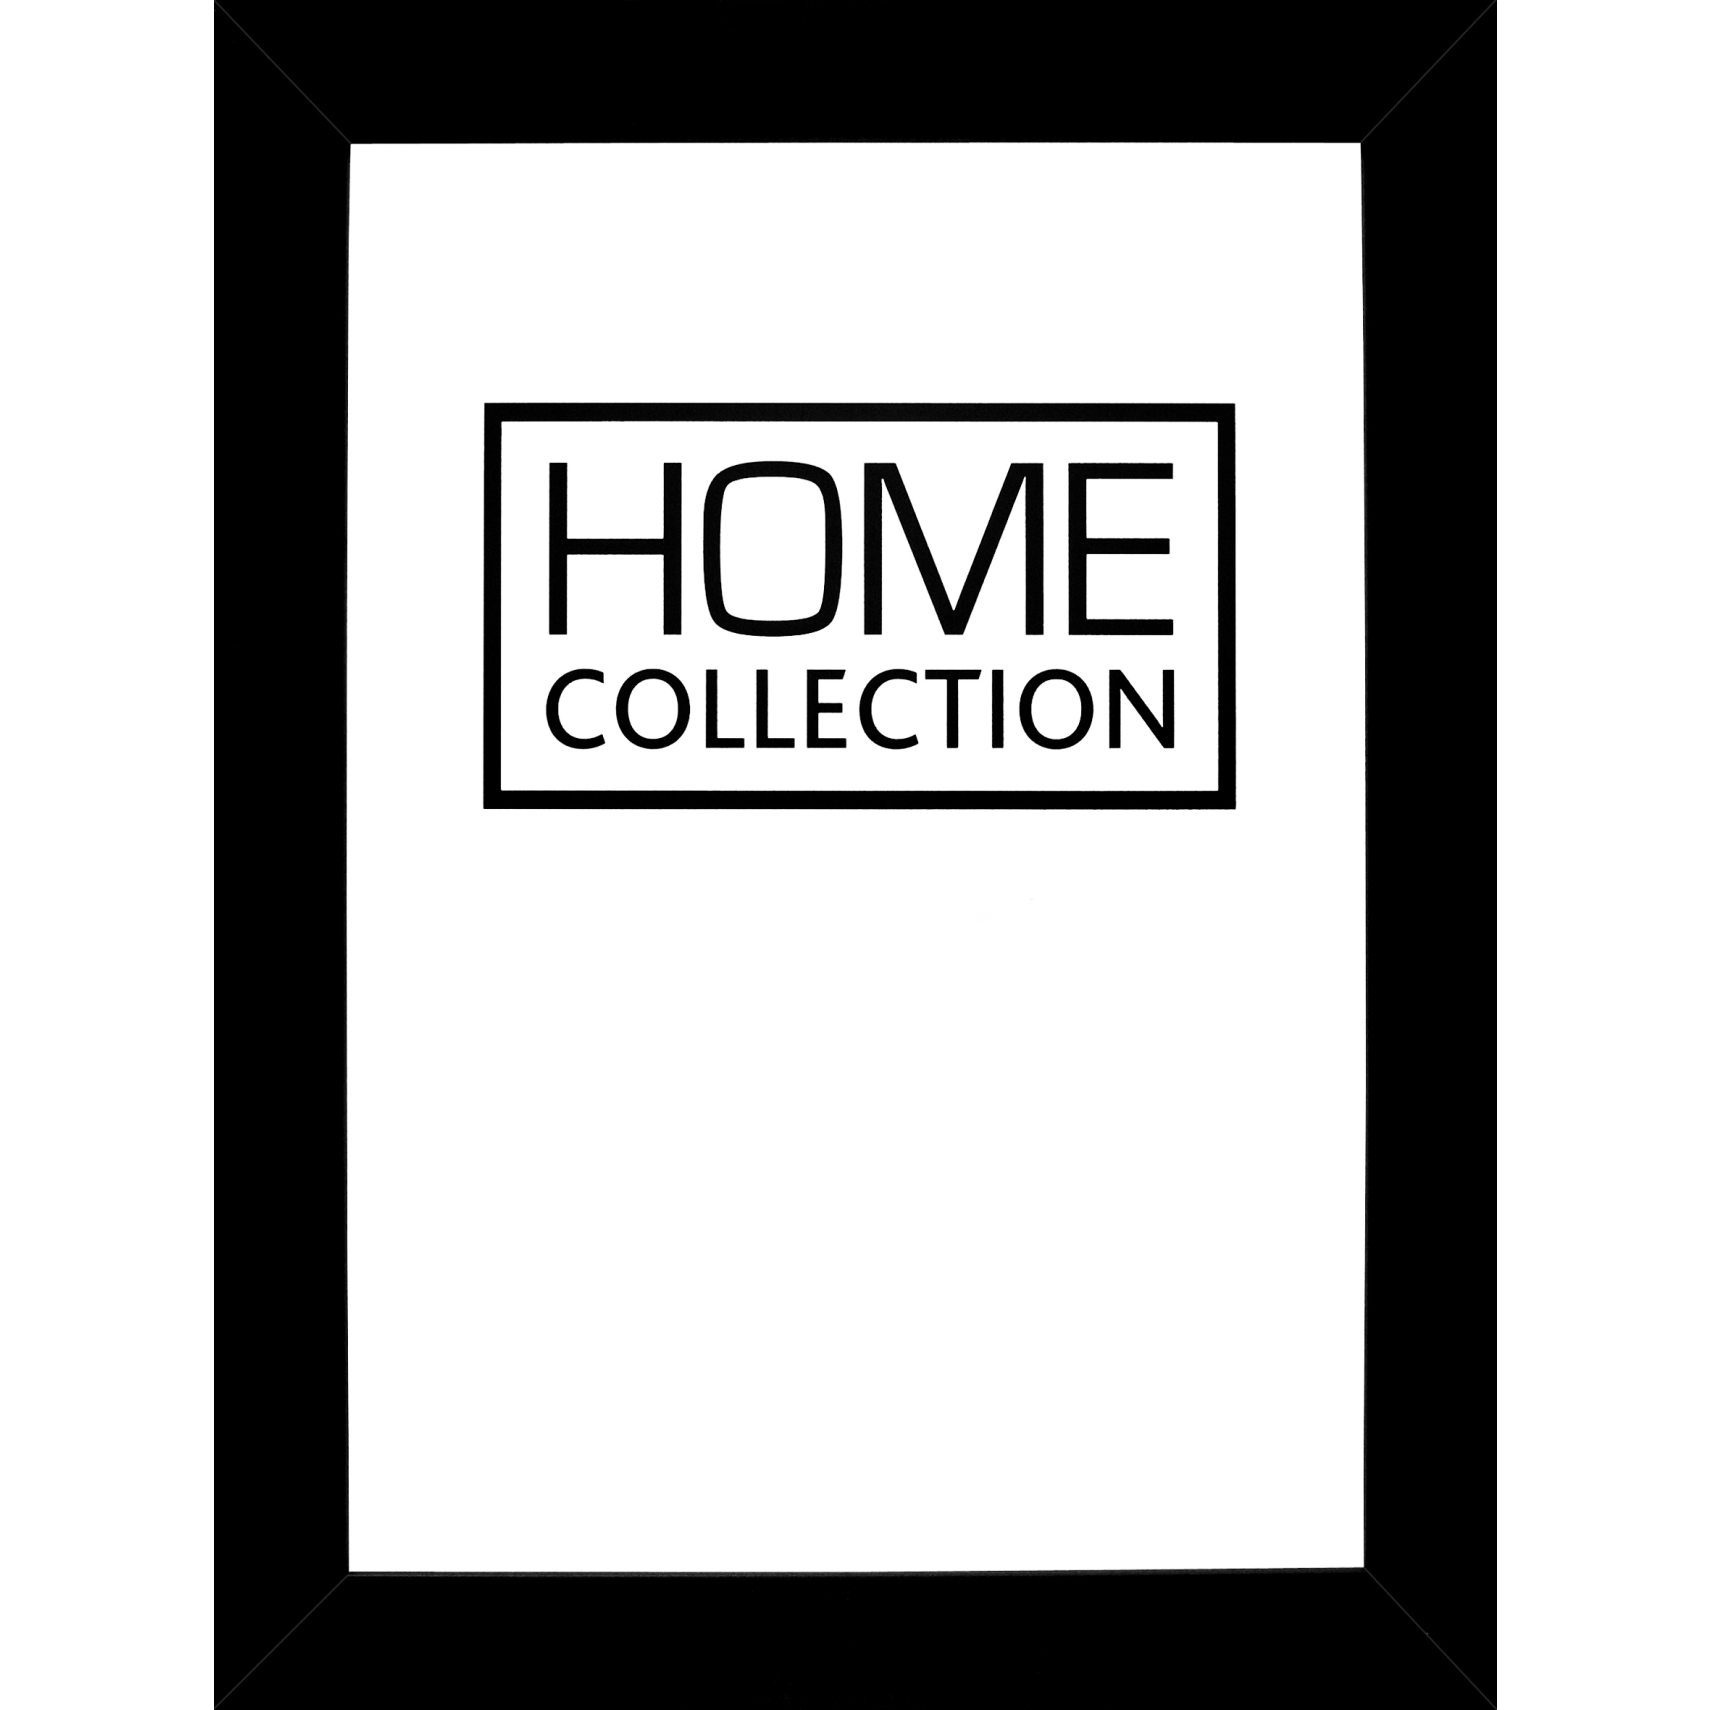 HOME COLLECTION Ramme - Sort træramme